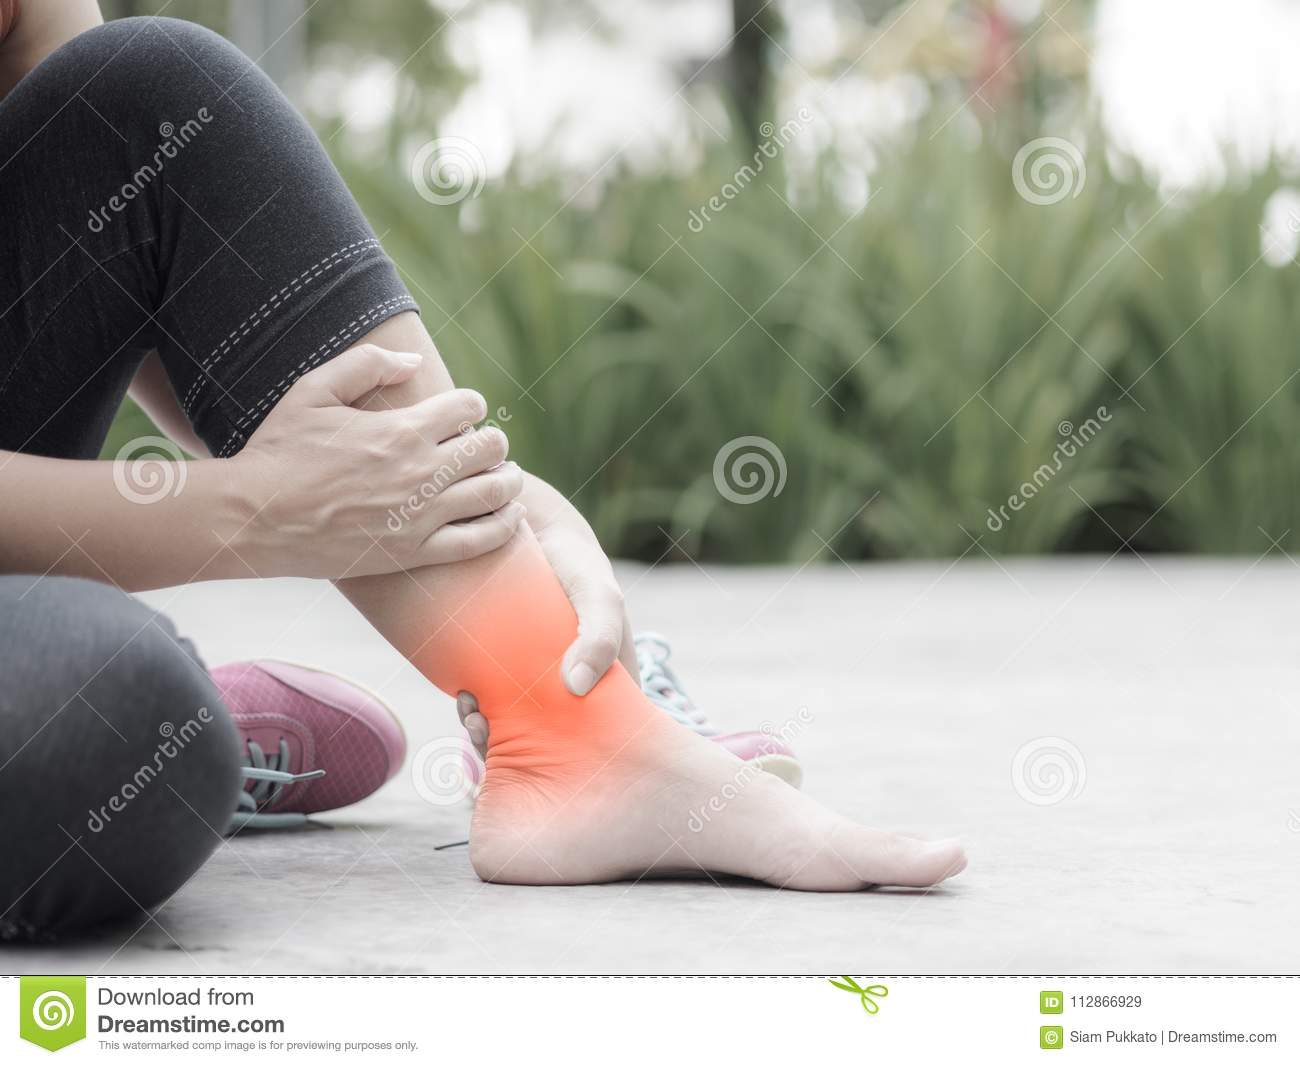 ed8822b0c4 Woman Suffering From An Ankle Injury While Exercising. Stock Image ...